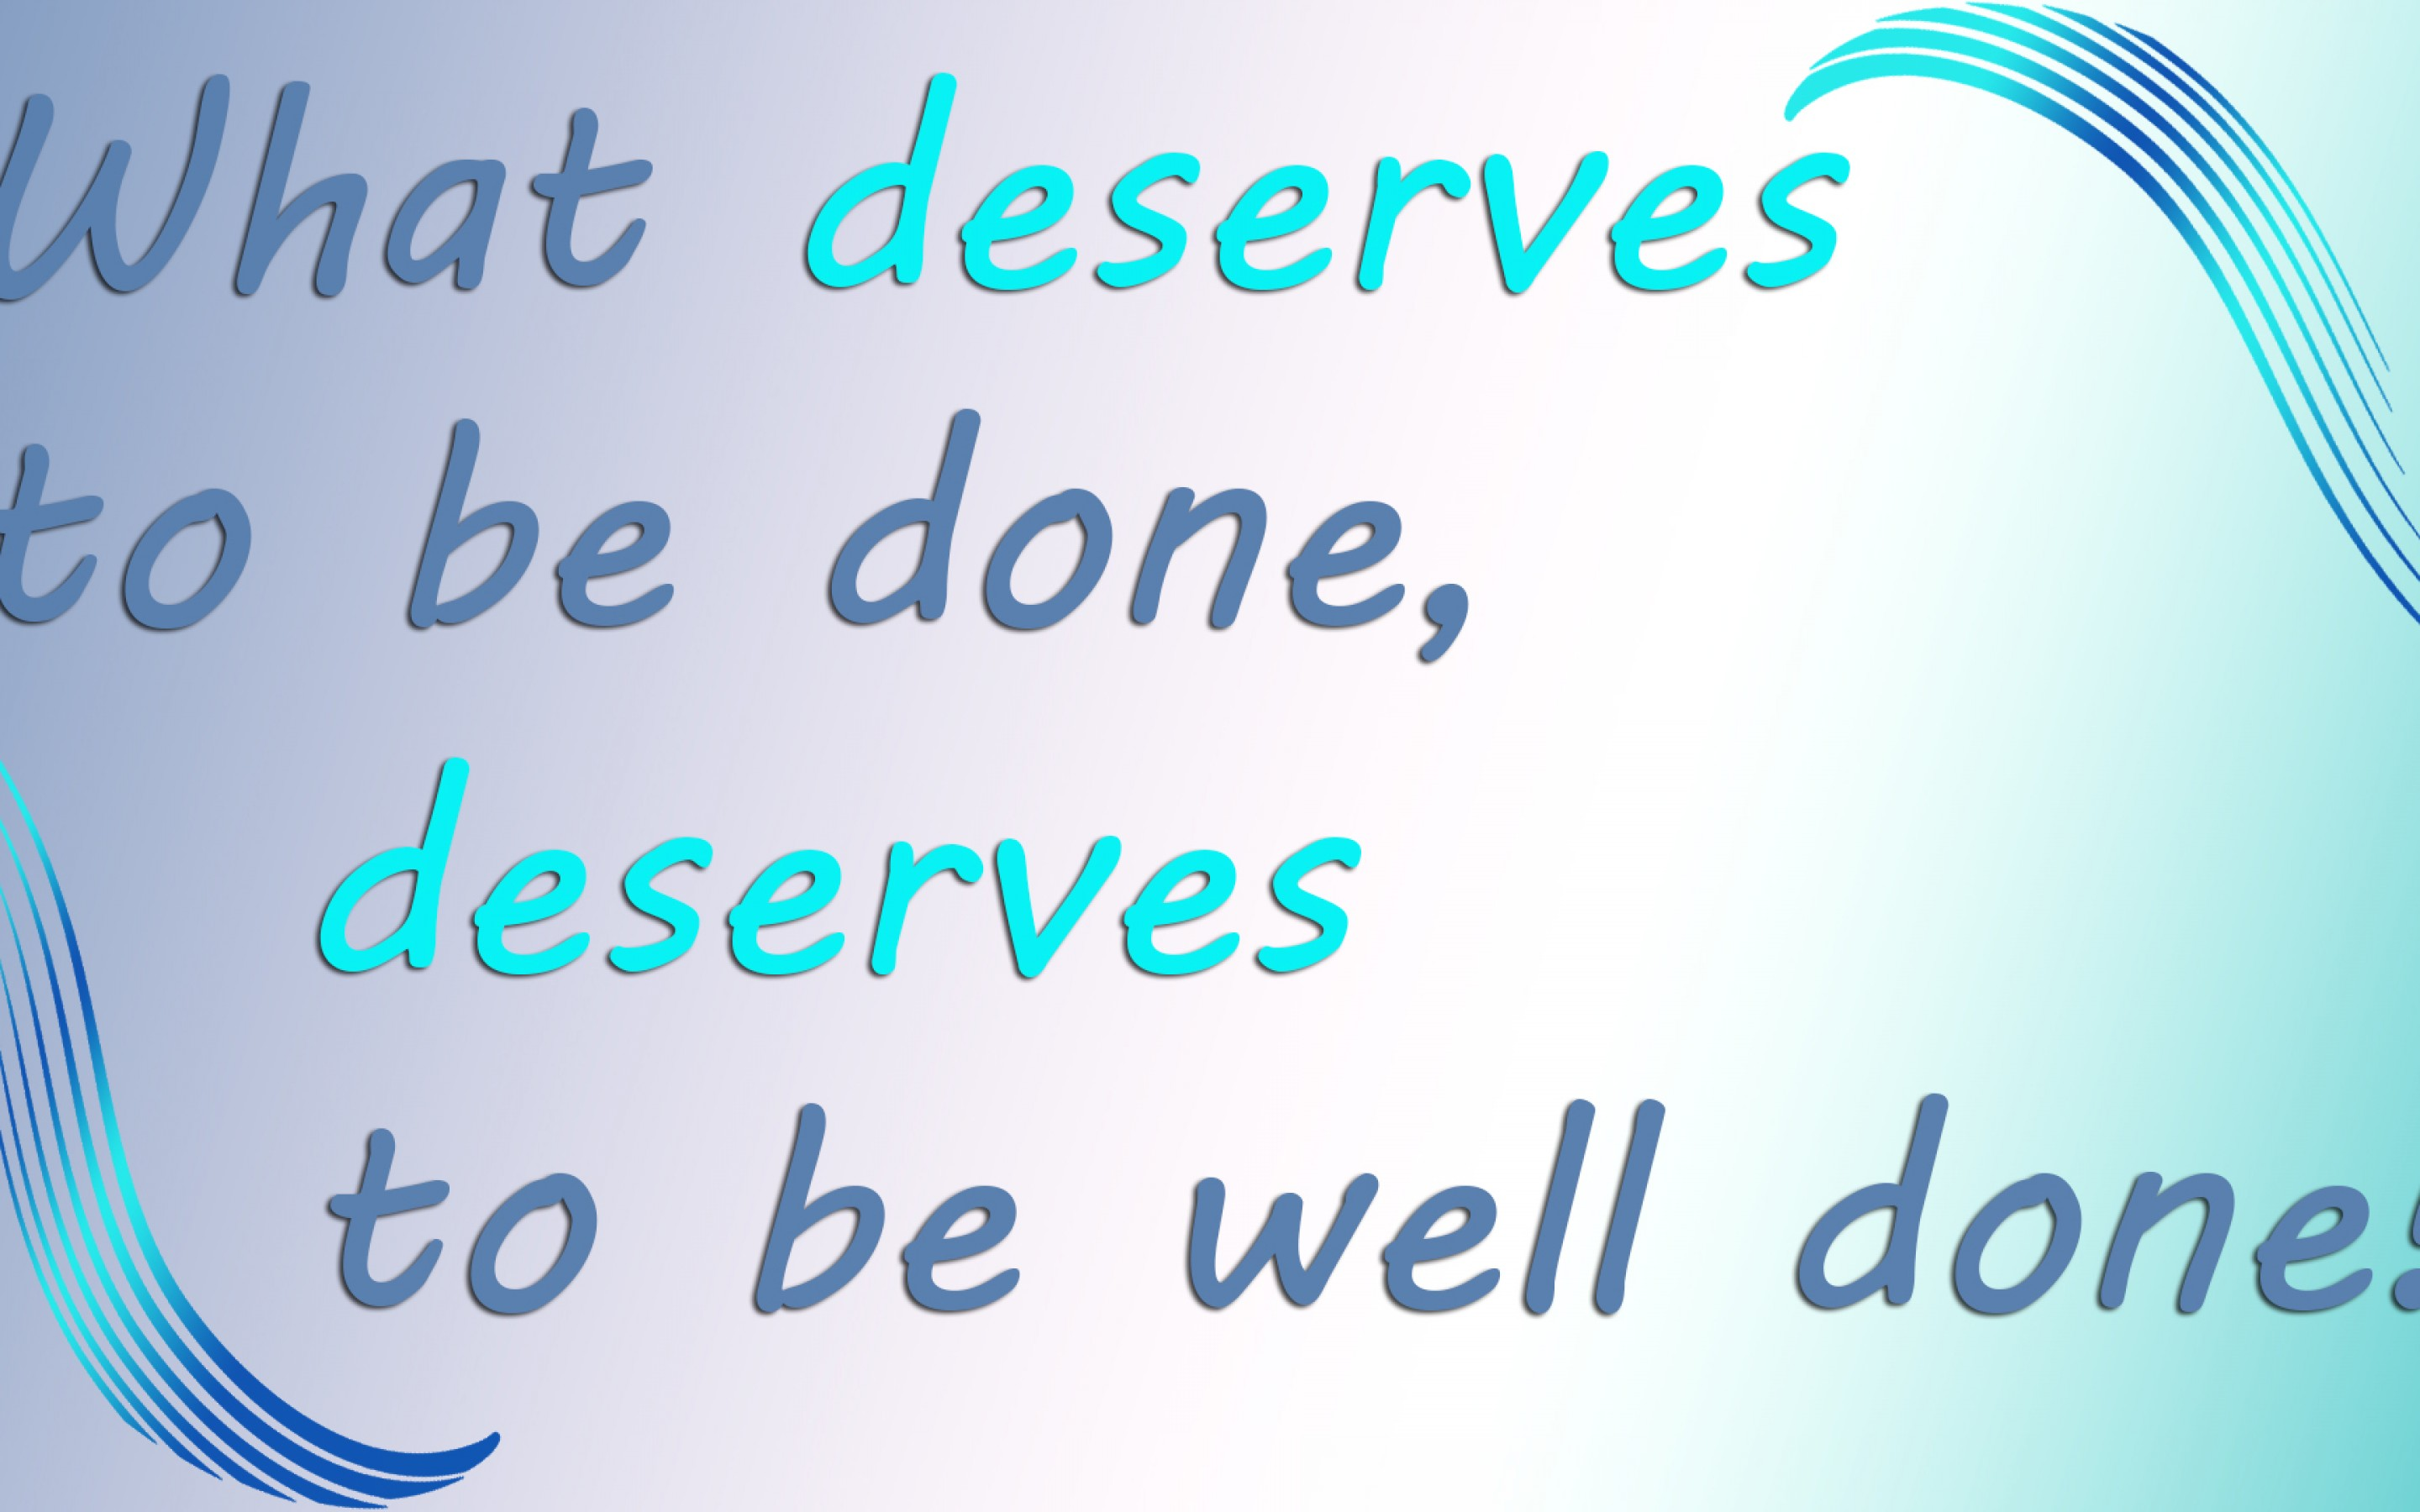 What deserves to be done HD Wallpaper